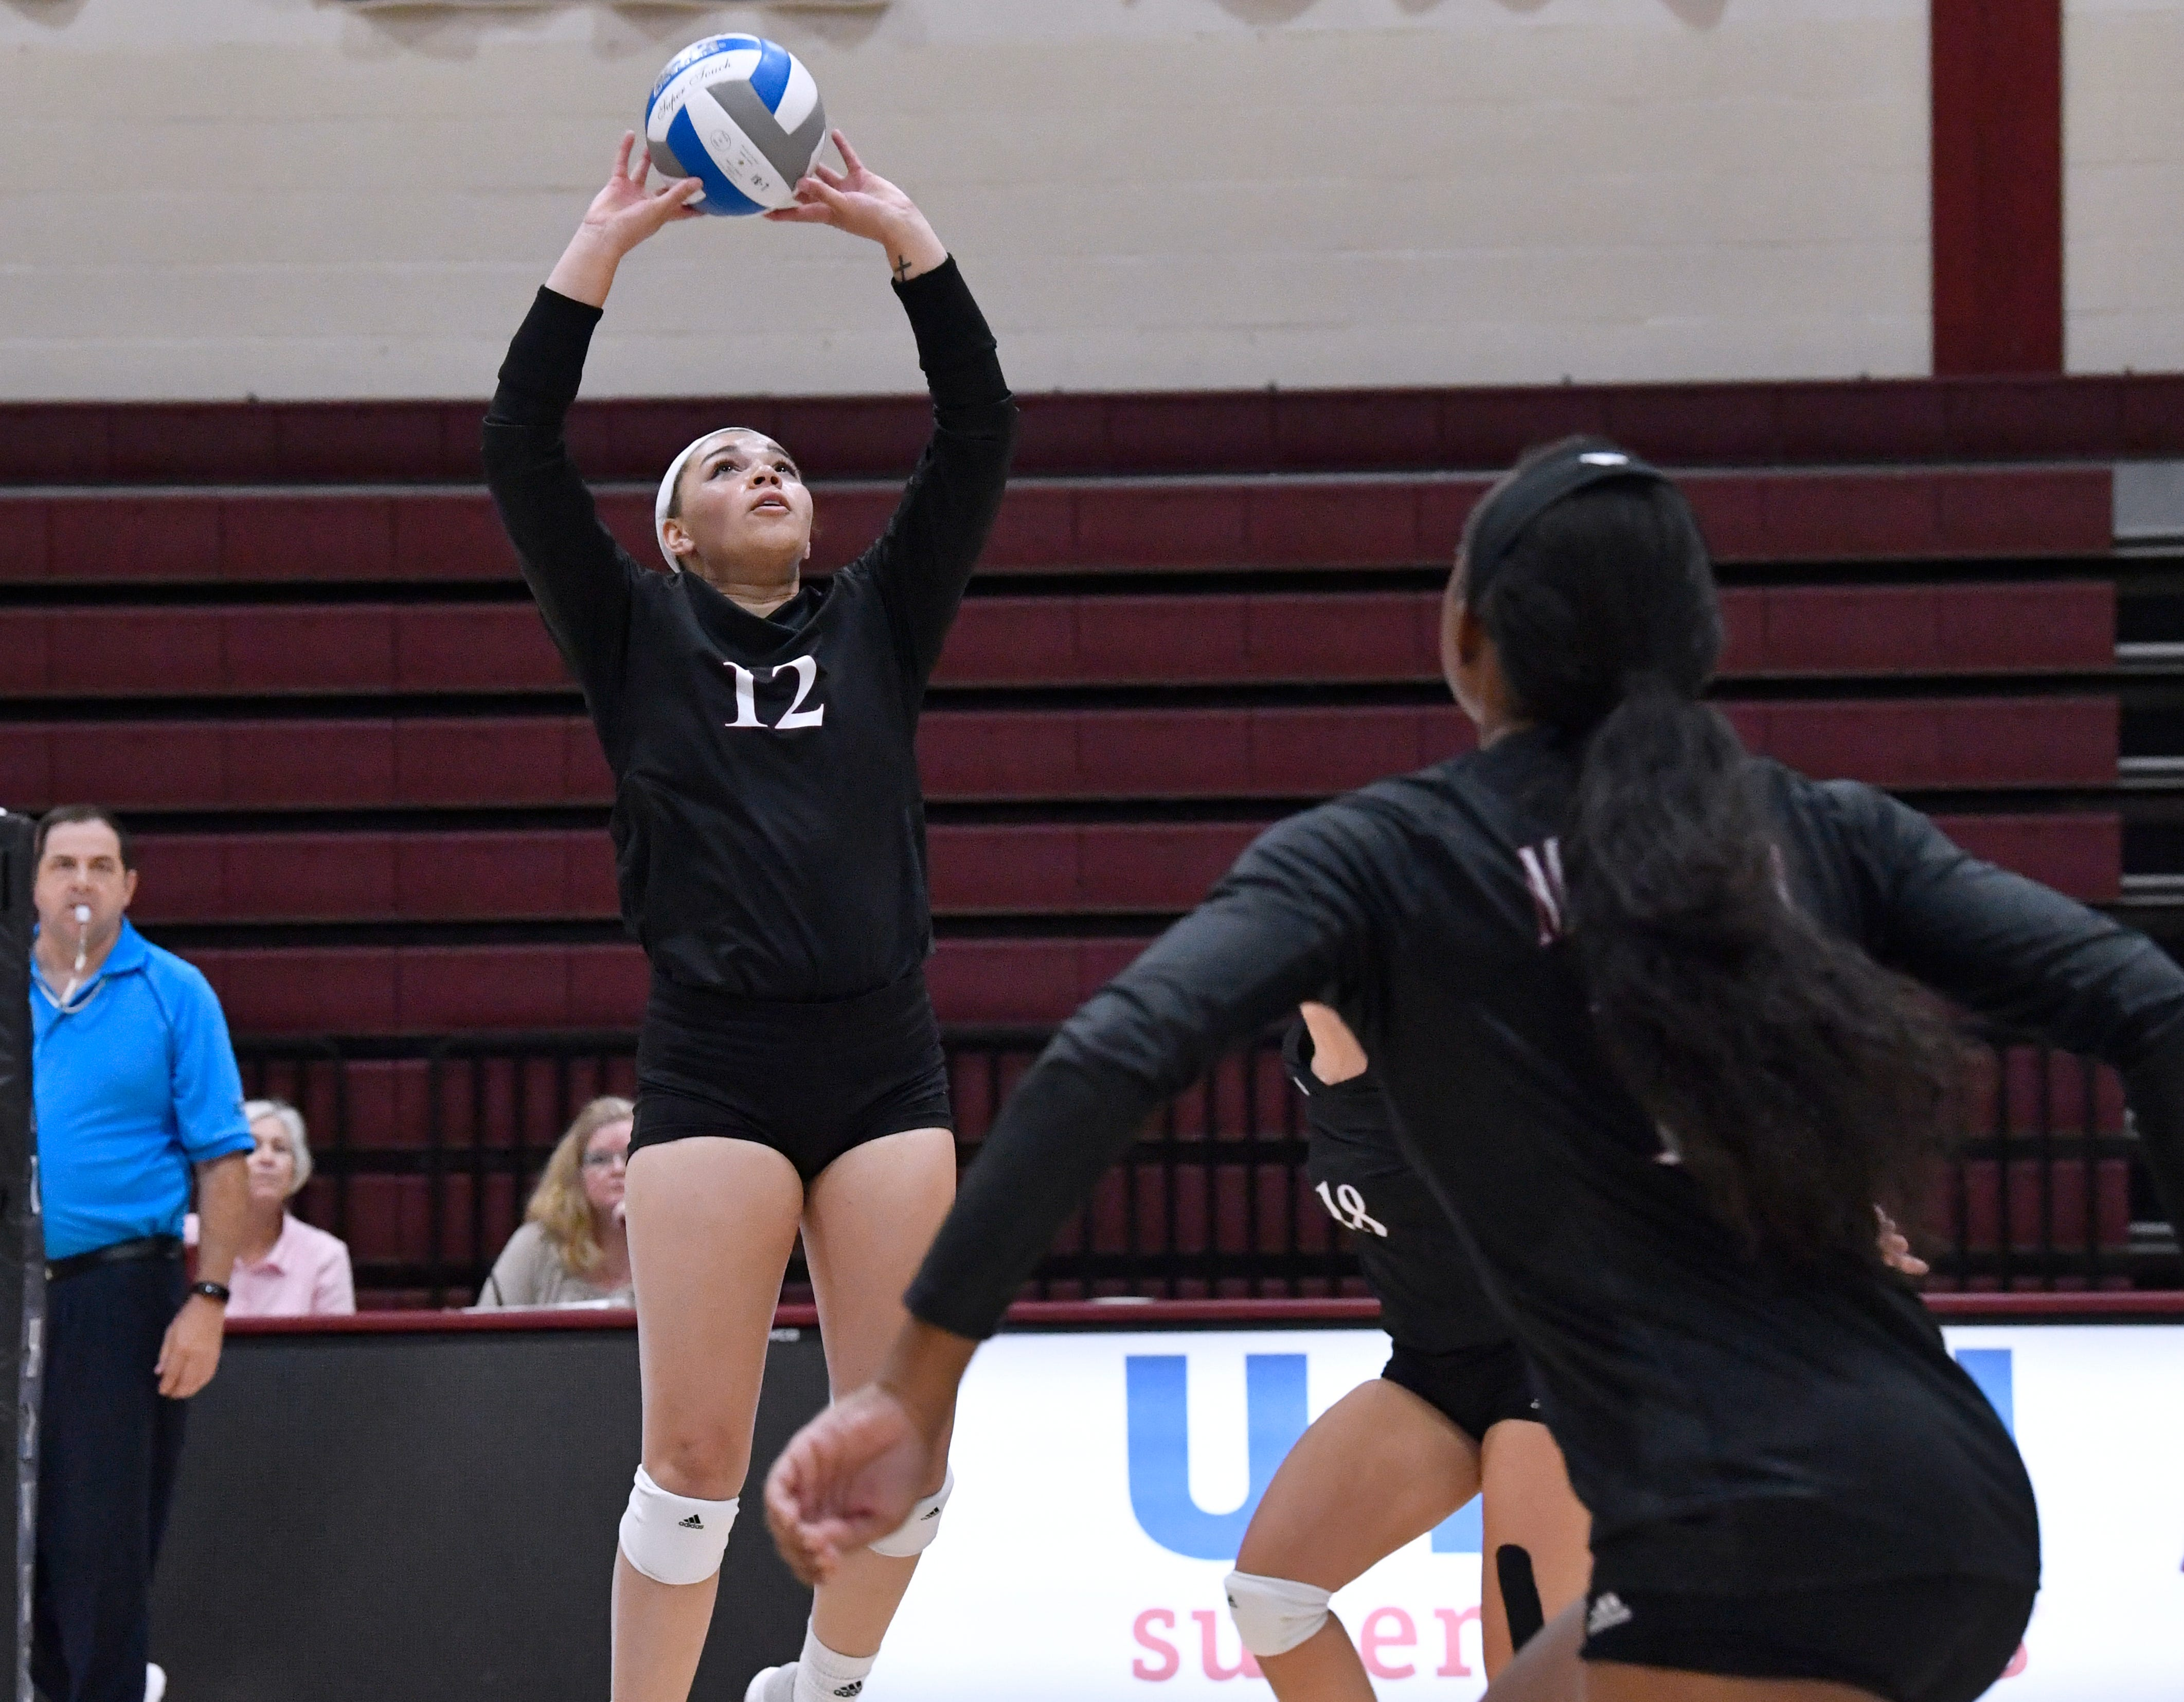 Emarie James sets the ball for McMurry University during the War Hawks' volleyball game against Schreiner University on Wednesday. McMurry won, 25-10, 25-15, 25-17.